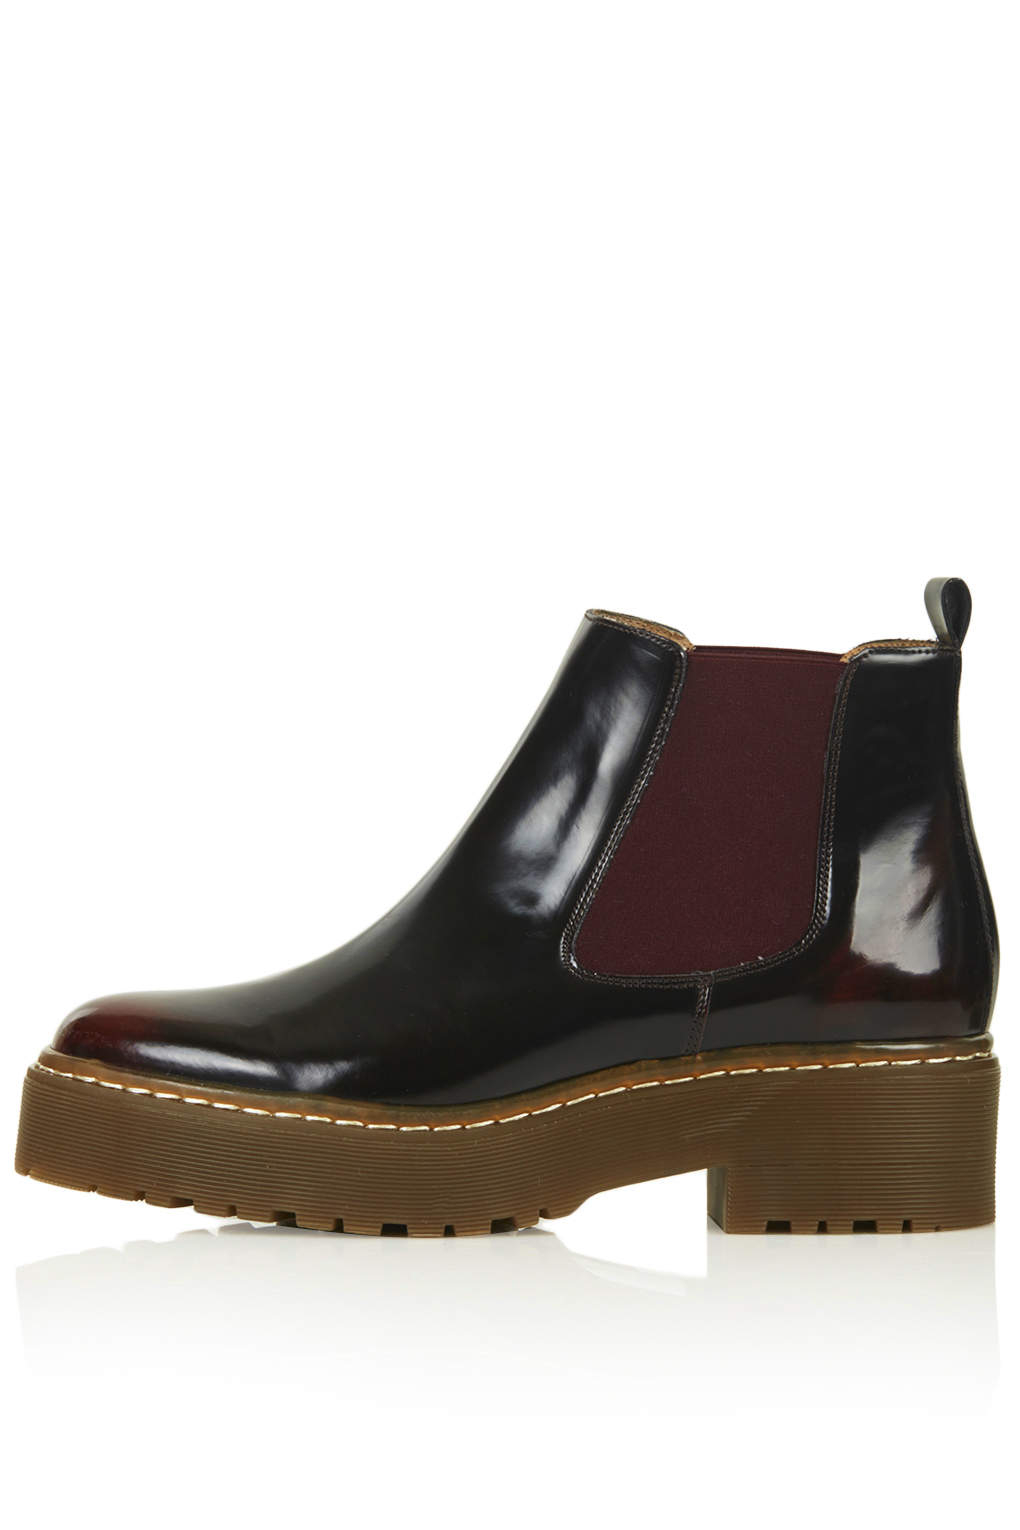 topshop absolutely chelsea boots in red bordeaux lyst. Black Bedroom Furniture Sets. Home Design Ideas